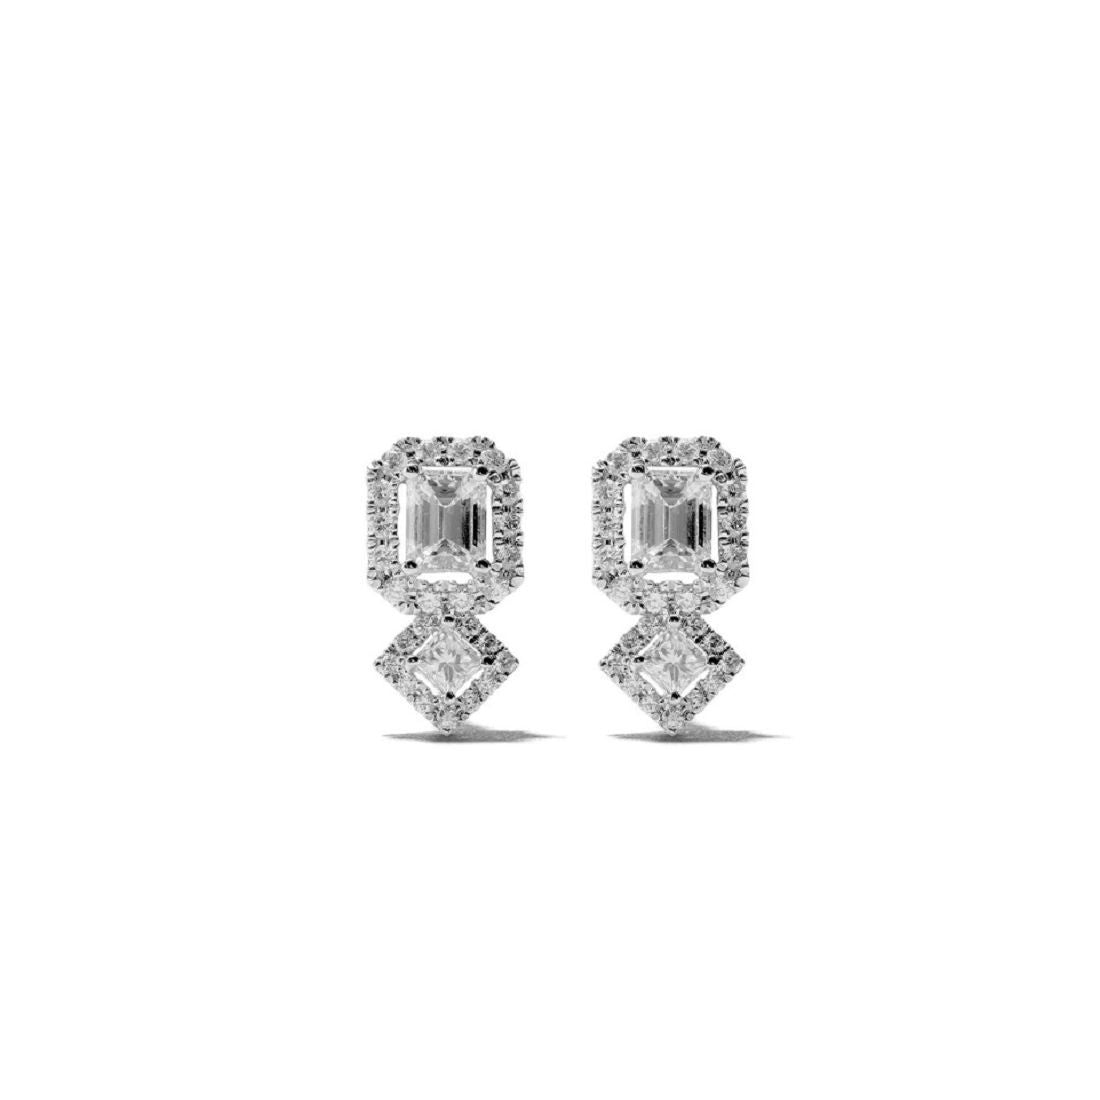 mye-rhombus-halo-diamond-earrings-in-18k-white-gold